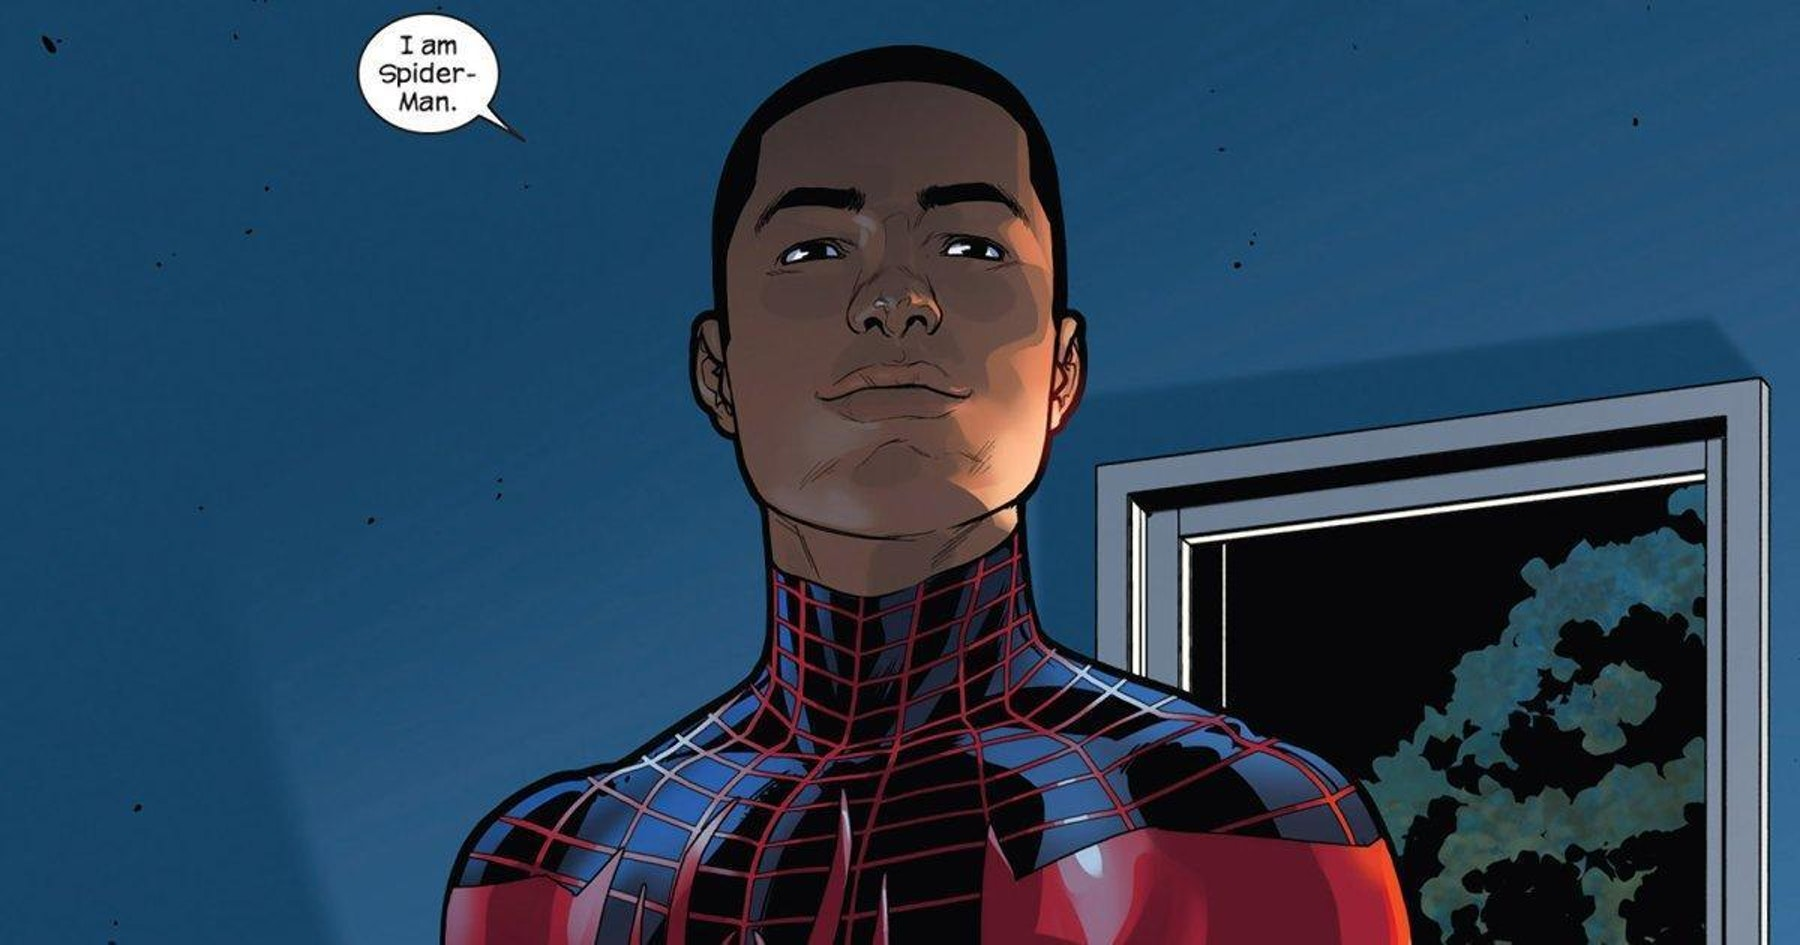 Miles Morales claims his spot as Spider-Man